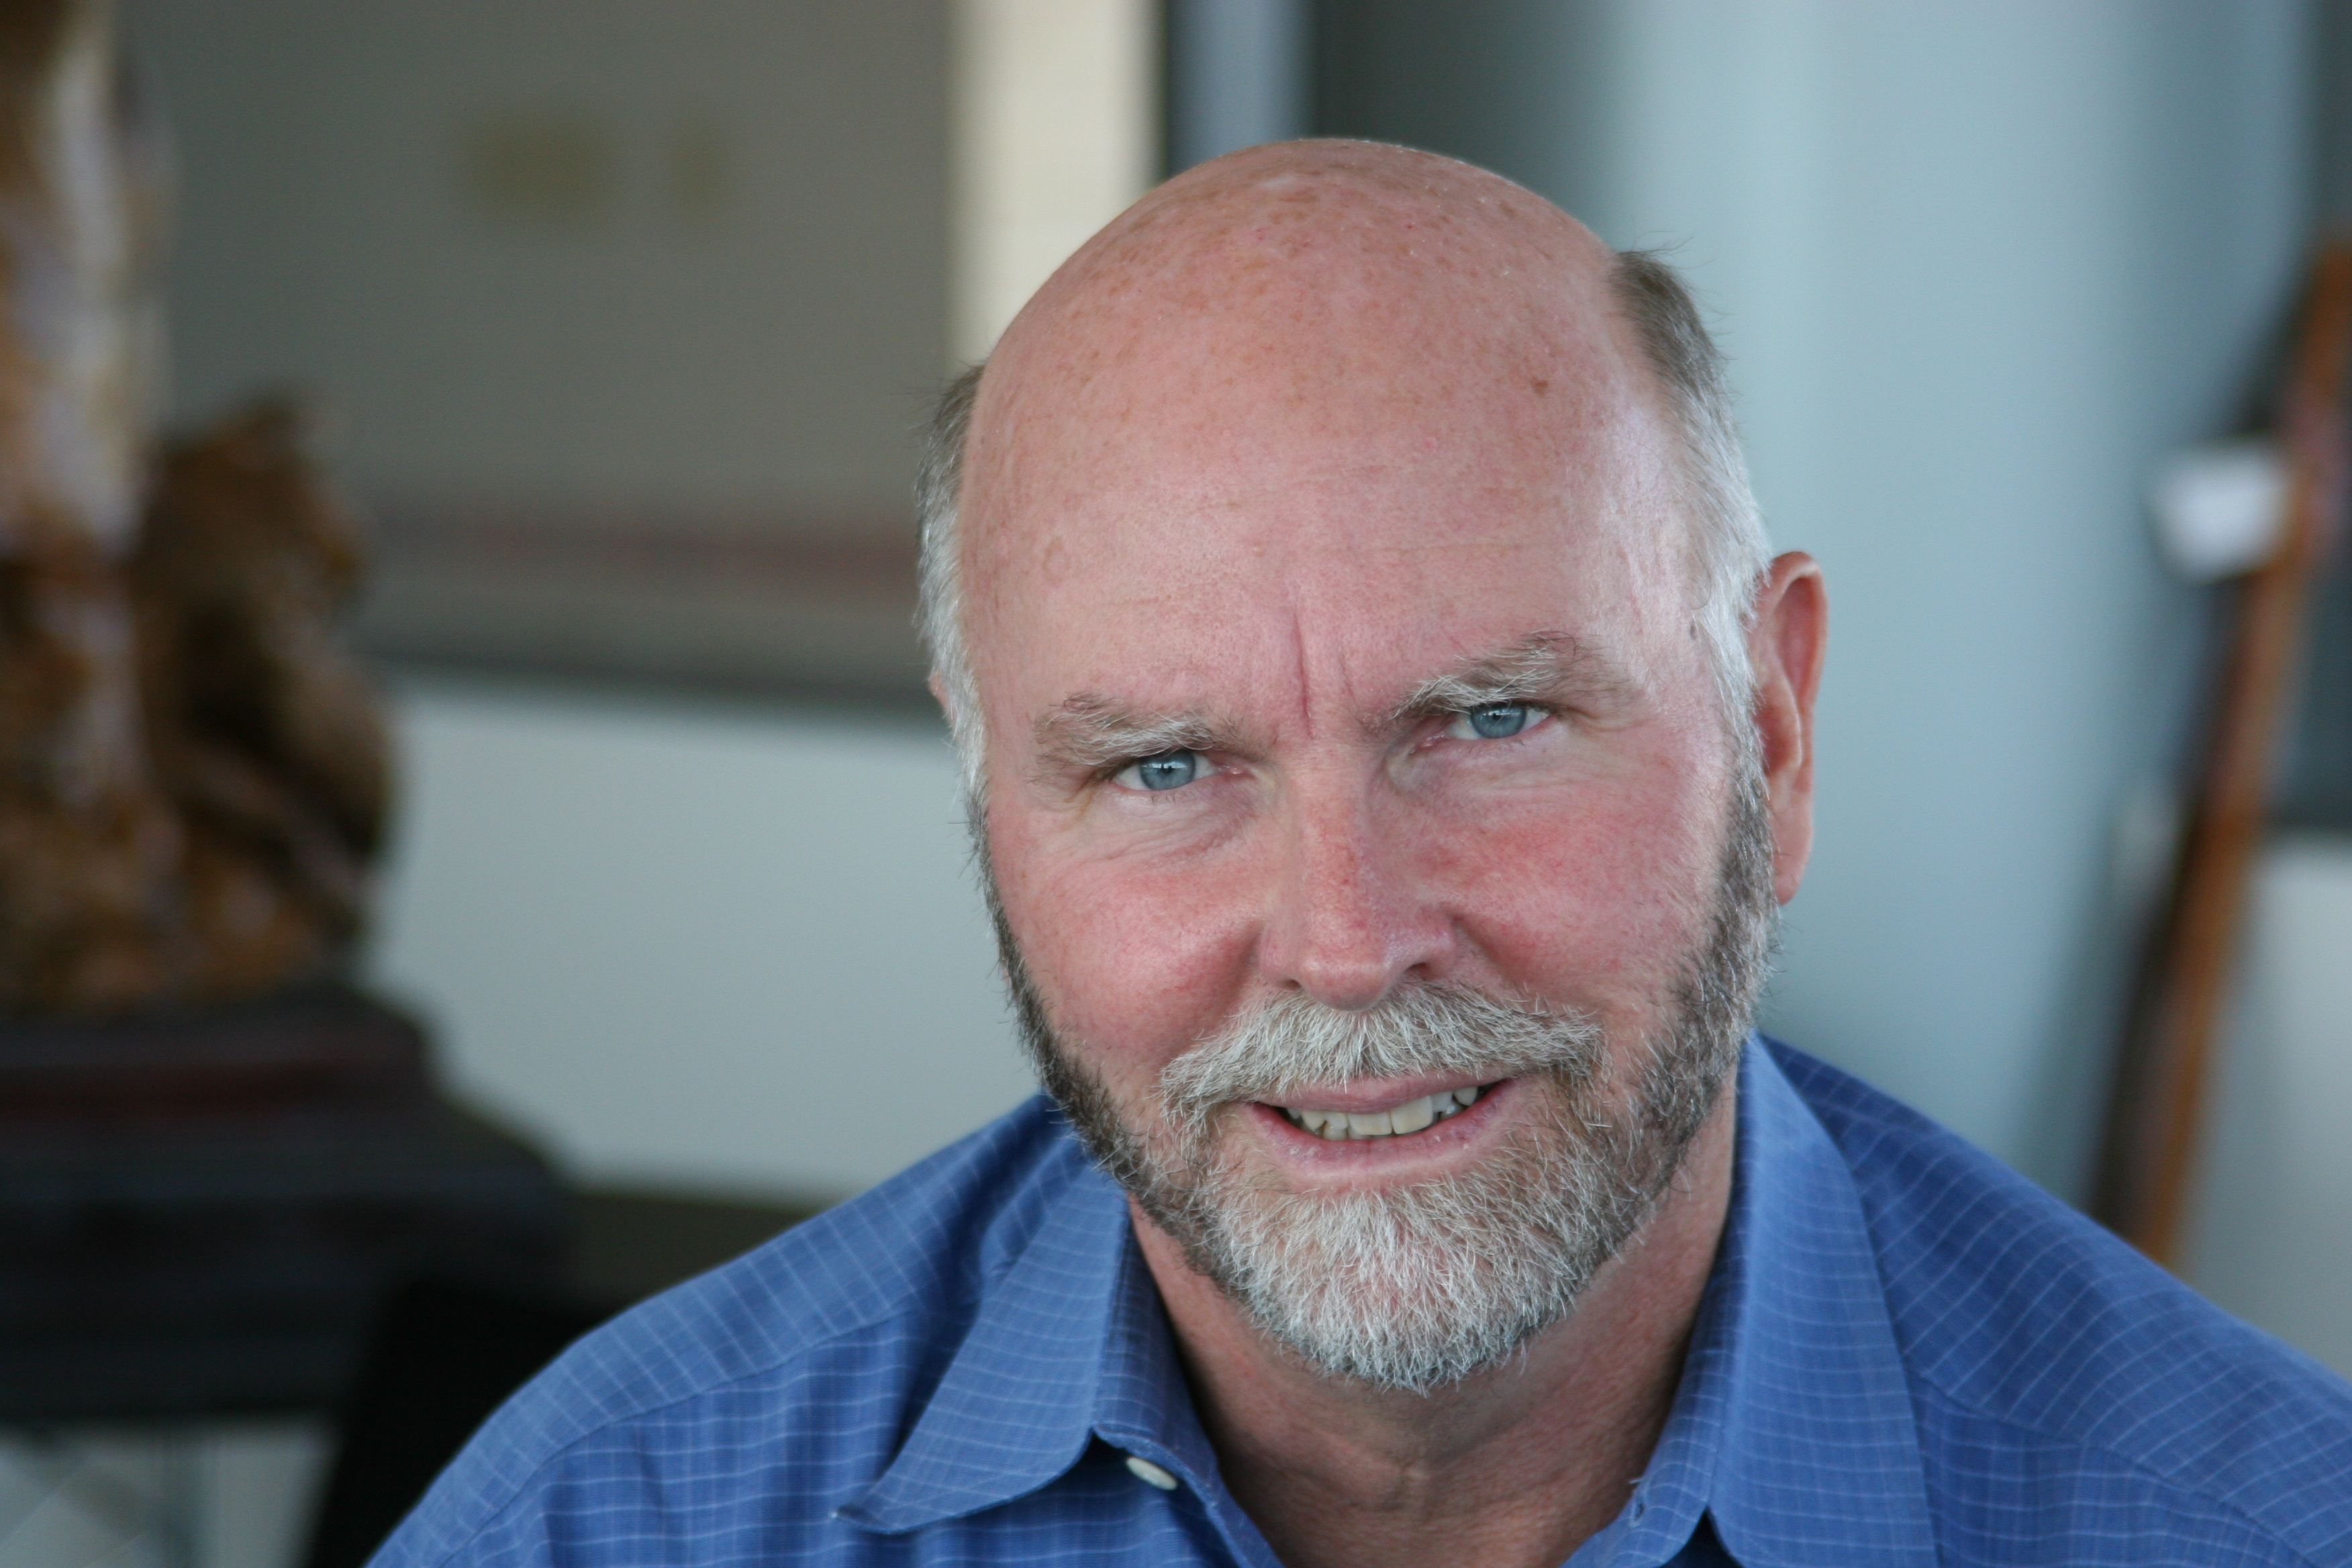 'Faxing' Life from Mars: Craig Venter's Wild, Digital Space Exploration Idea